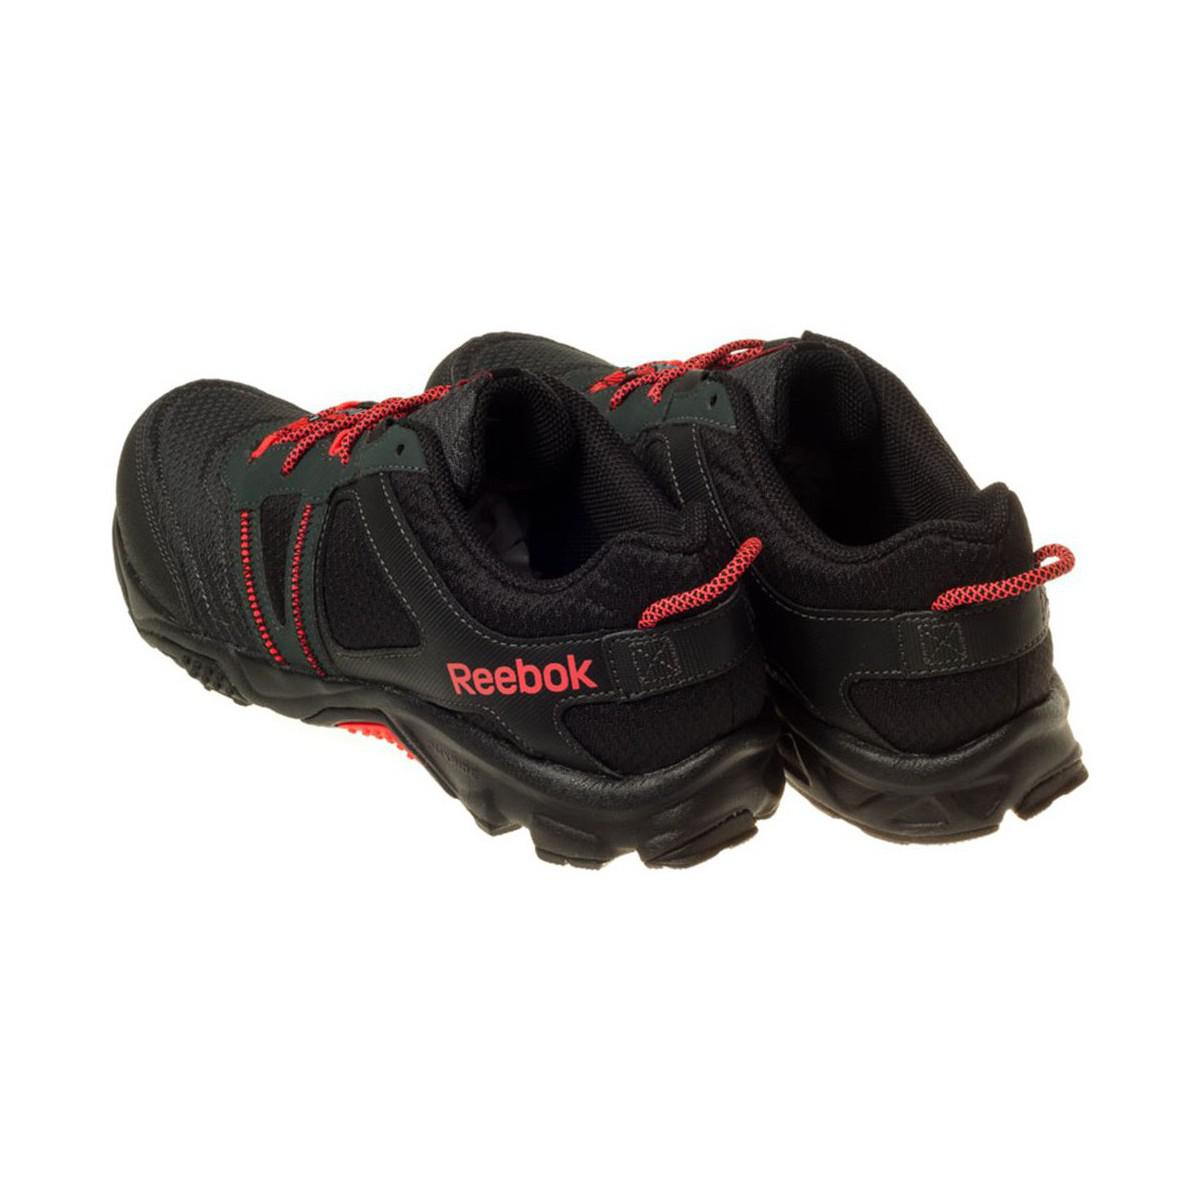 0d13ae37f Reebok Trail Voyager Rs 20 Women s Shoes (trainers) In Black in ...